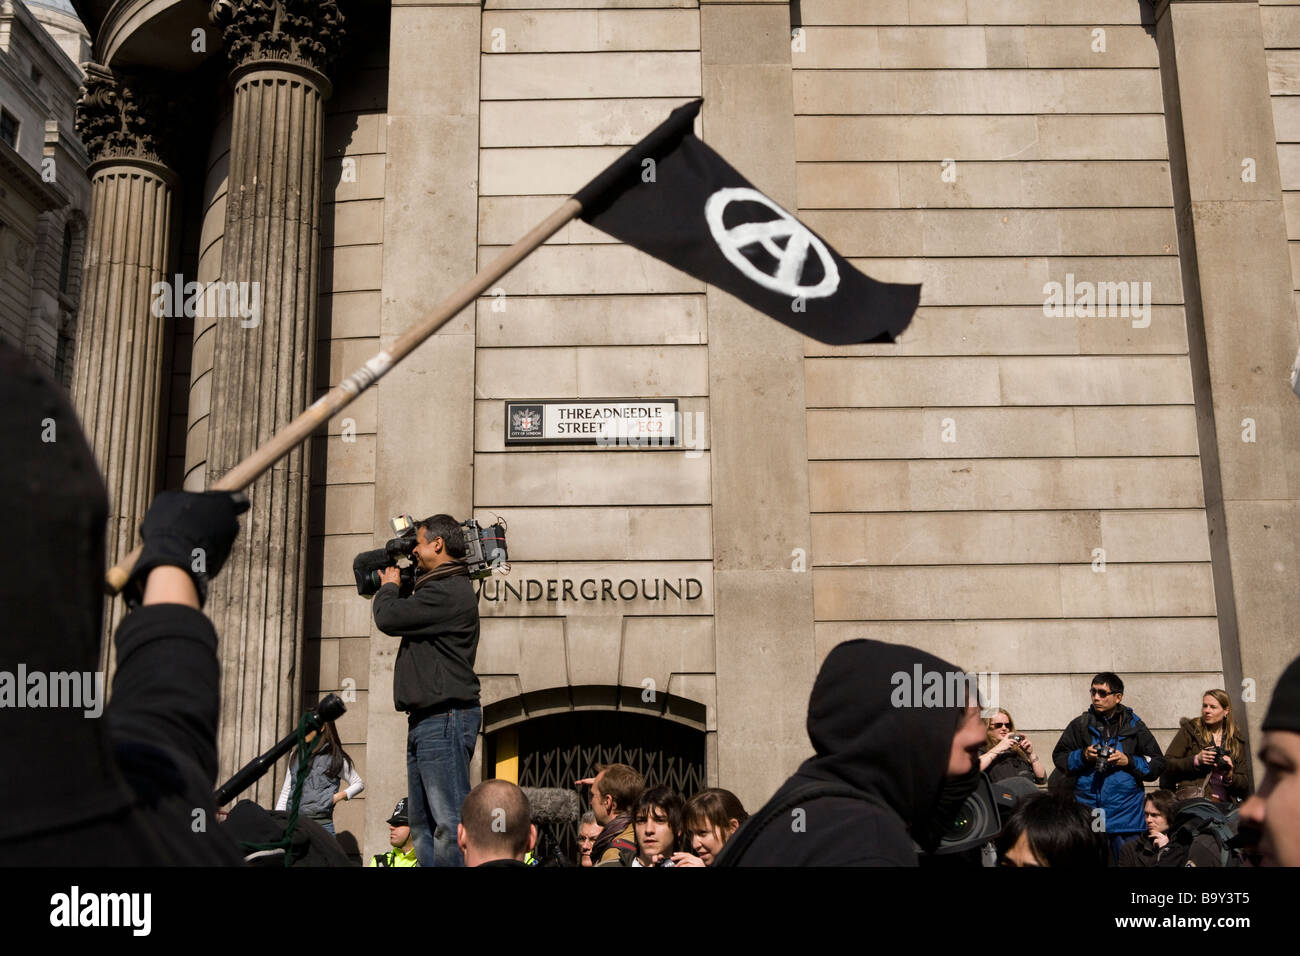 Demonstrators at the Bank of England protesting at the G20 summit in London. April 1st 2009 - Stock Image